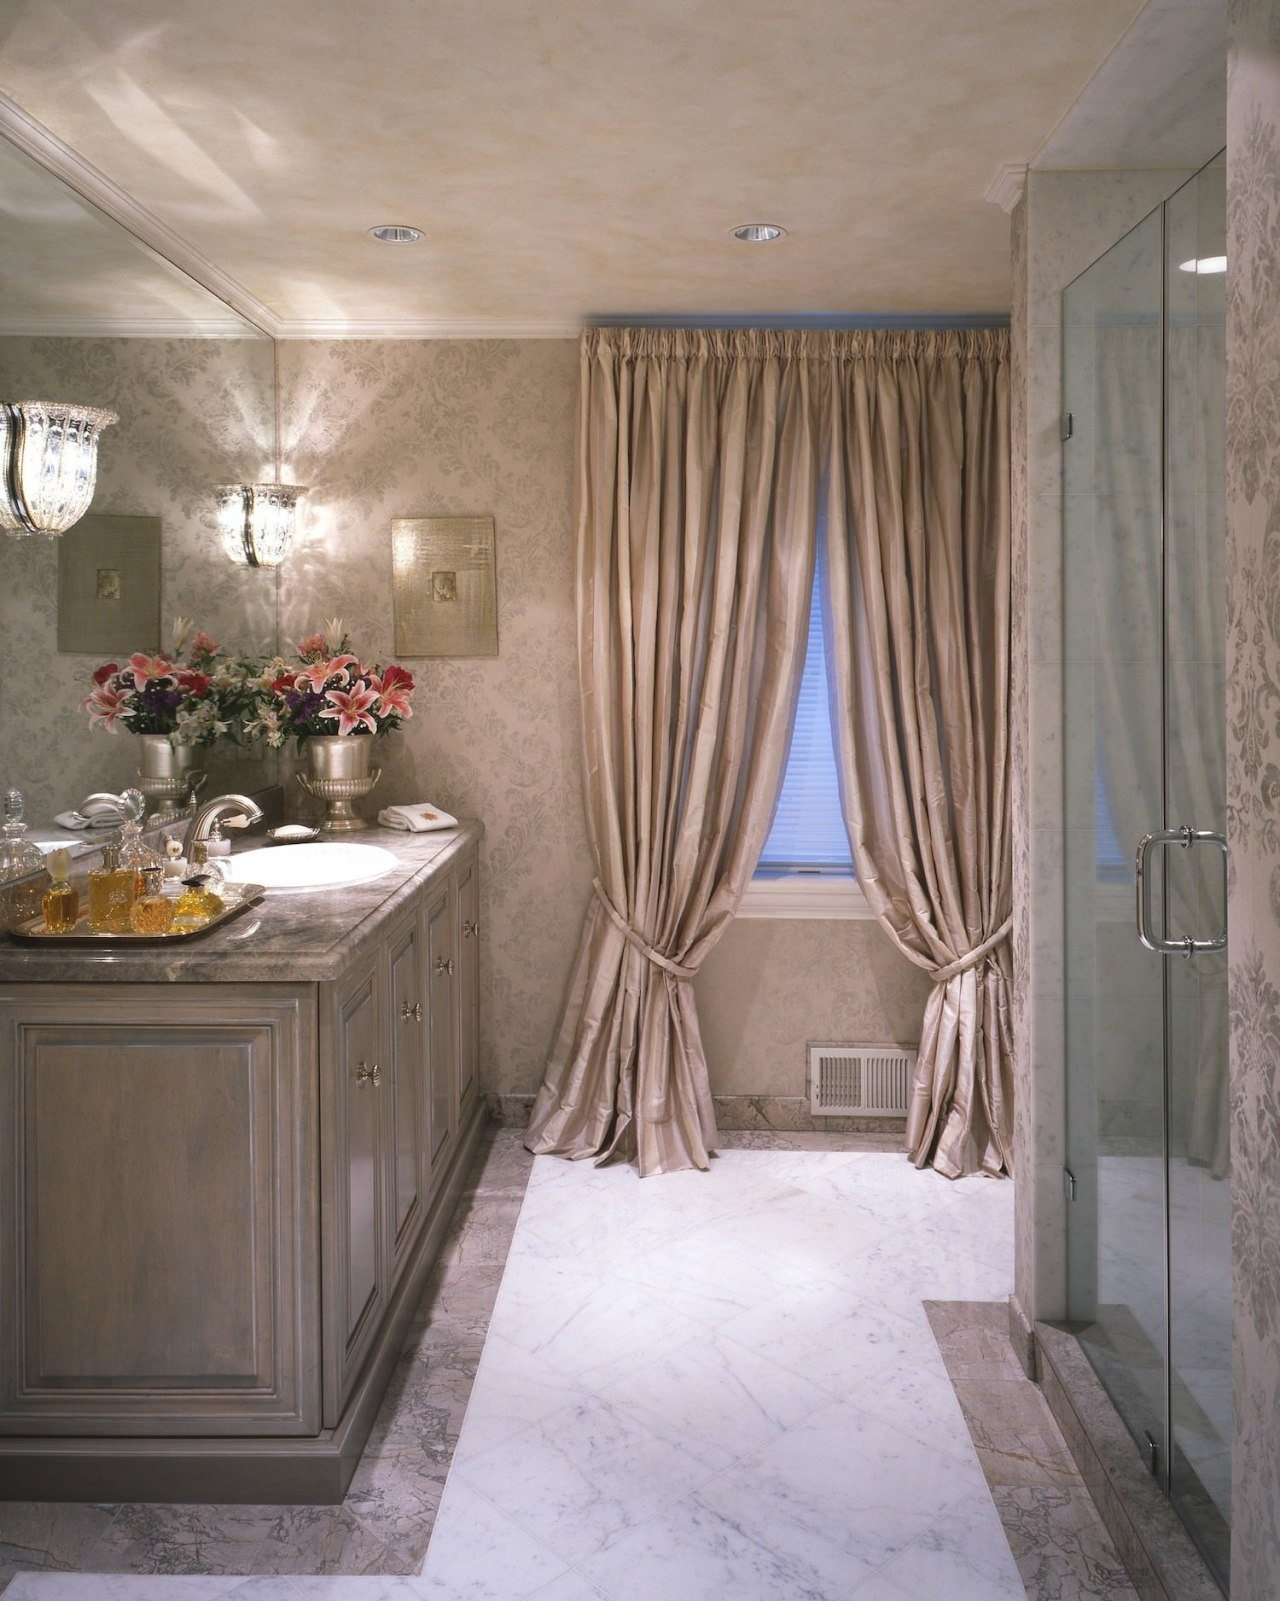 Elegant fittings line this bathroom bathroom, ceiling, curtain, floor, flooring, home, interior design, room, textile, wall, window, window covering, window treatment, gray